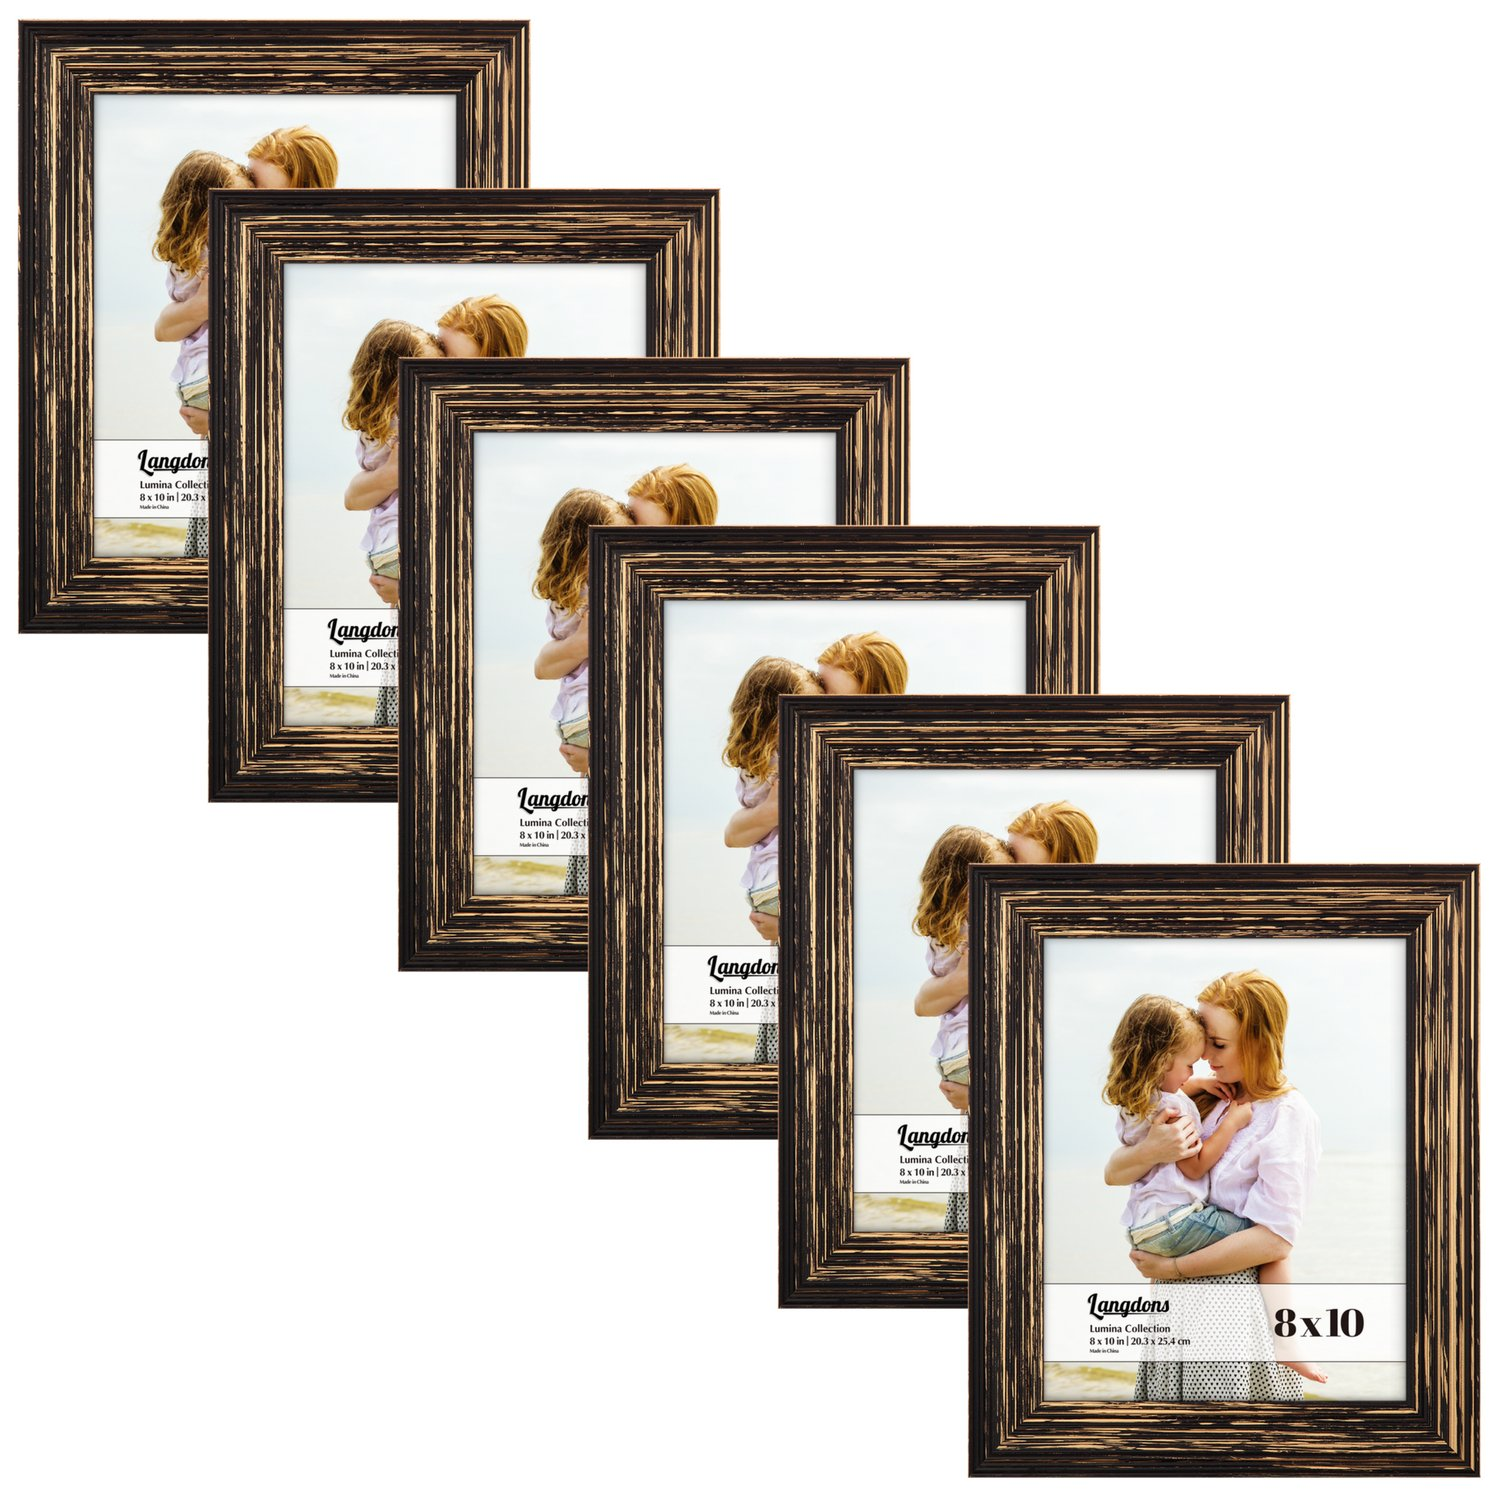 Langdons 8x10 Picture Frame Set (6-Pack, Barnwood Brown) Solid Wood Photo Picture Frames 8x10, Wall Hanging or Table Top, Display Picture Frame 8x10 Vertically or 10x8 Horizontally, Lumina Series